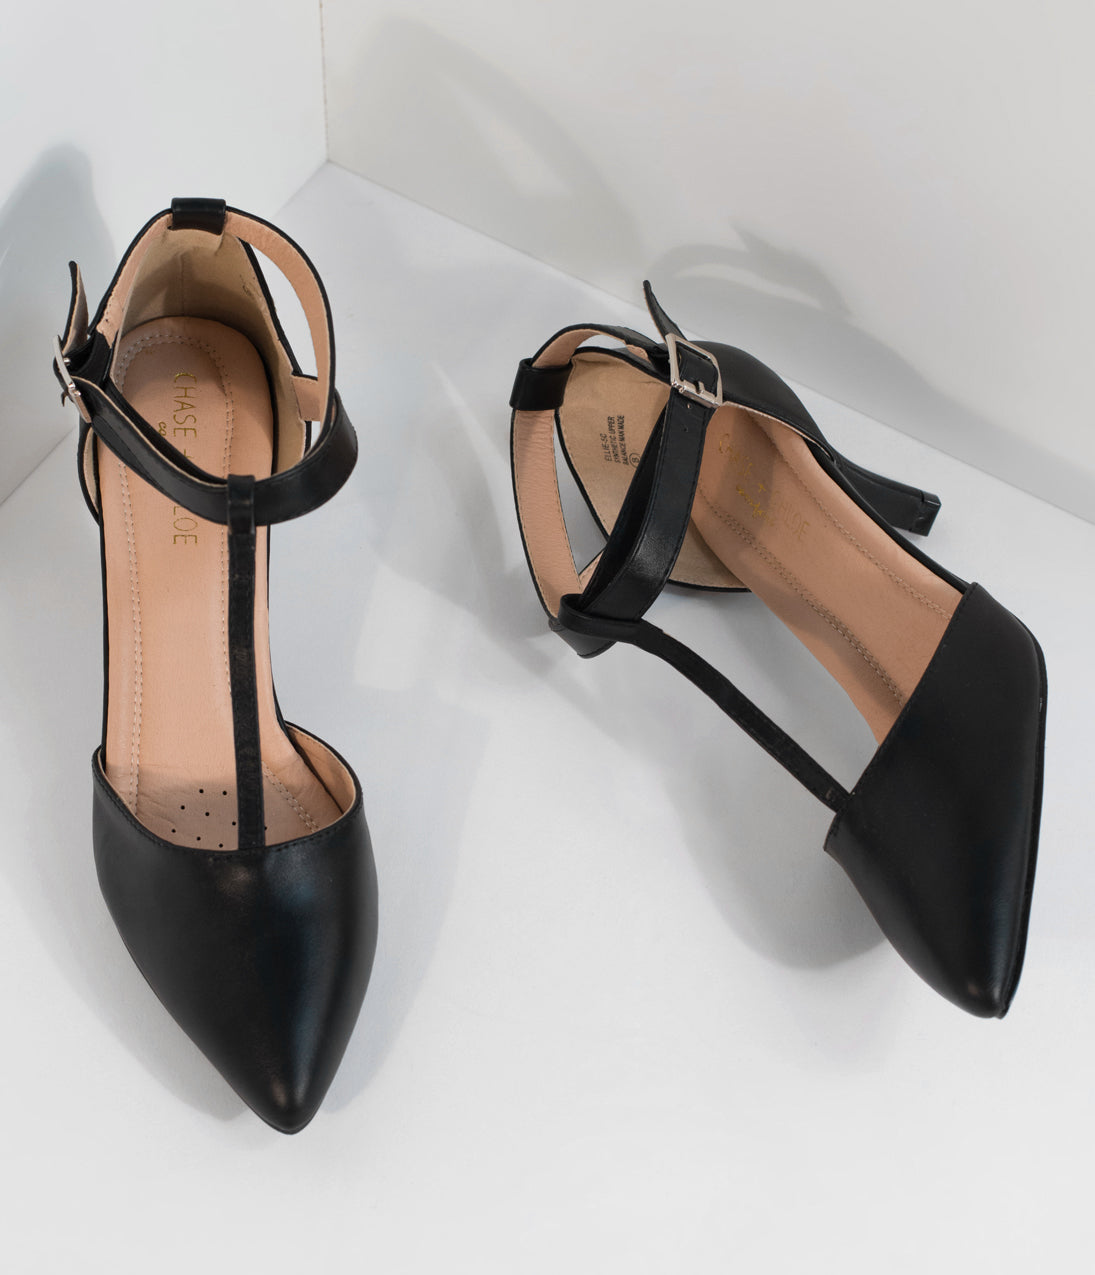 Vintage Style Shoes, Vintage Inspired Shoes Black Leatherette Pointed Toe Ellie T-Strap Heels $46.00 AT vintagedancer.com